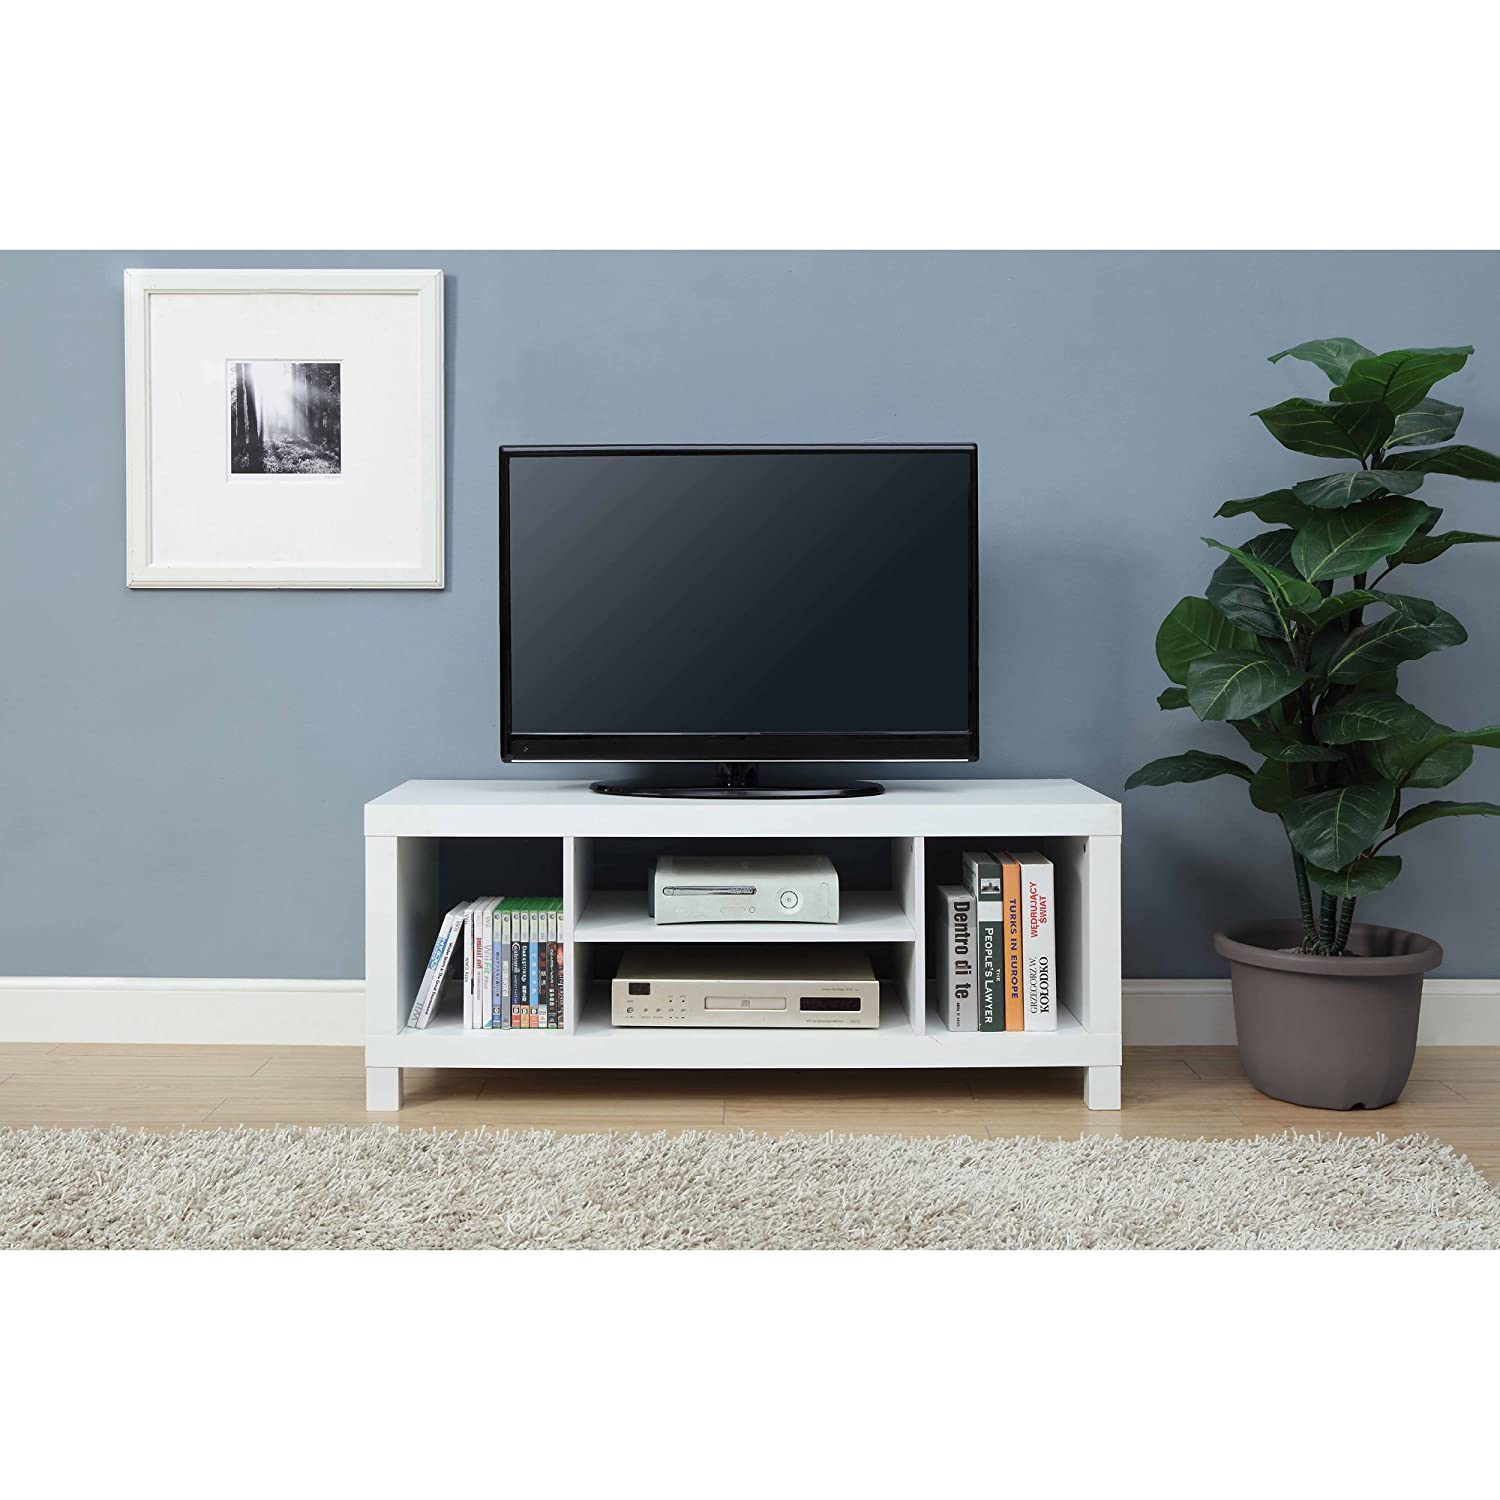 Amazon Com Mainstay Tv Stand For Tvs Up To 42 Dimension 47 24